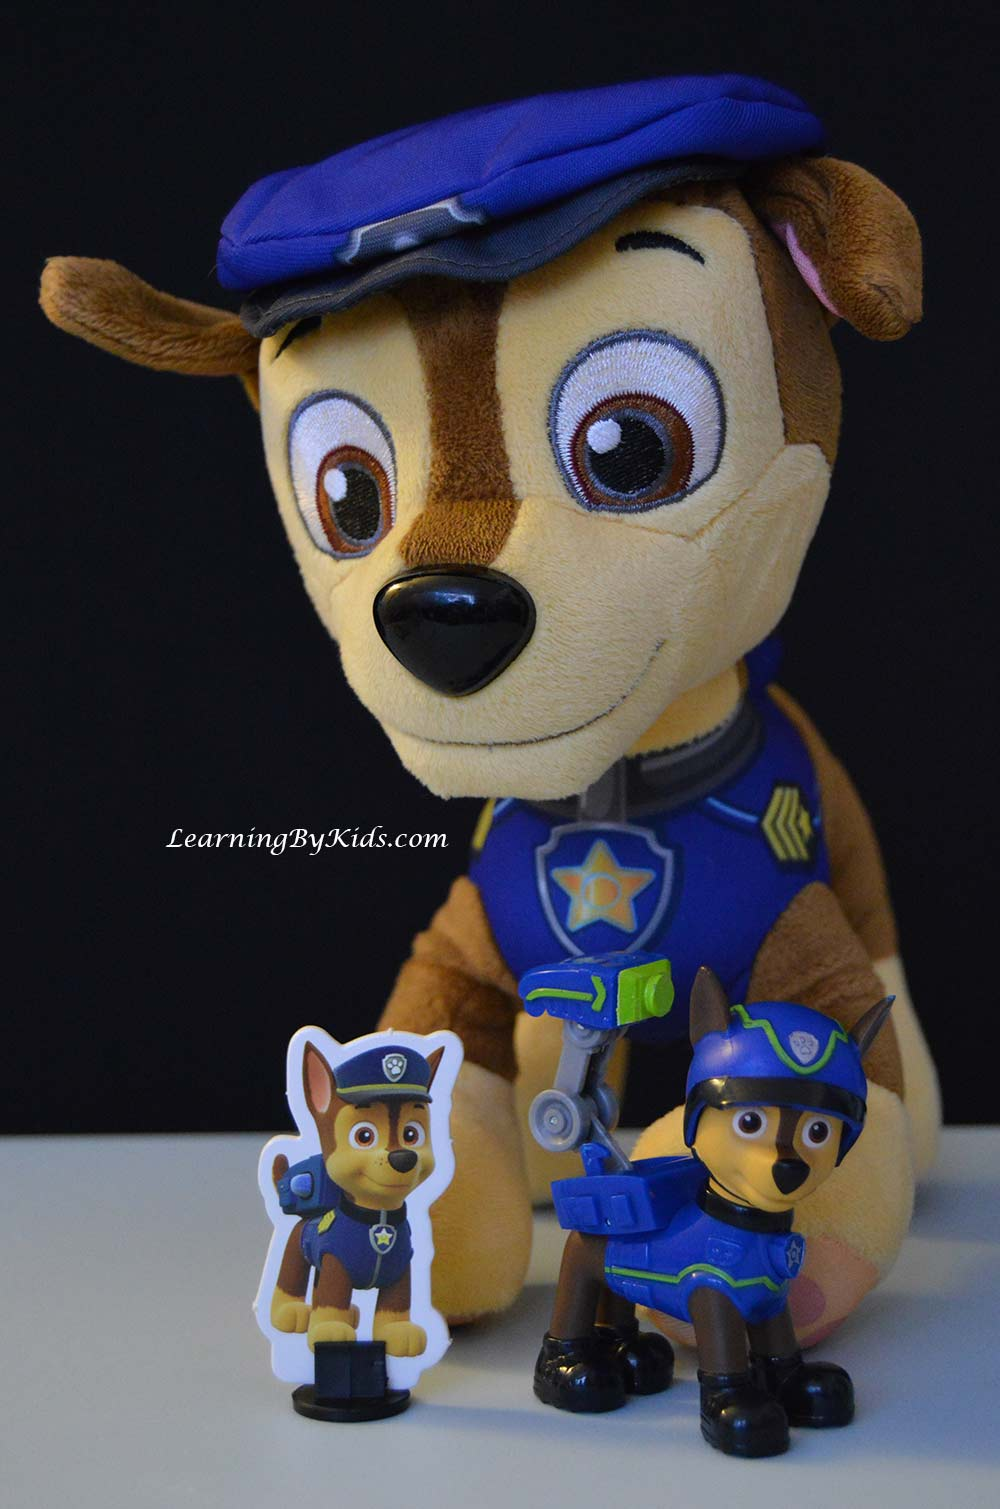 PawPatrolChaseToys---LearningByKids